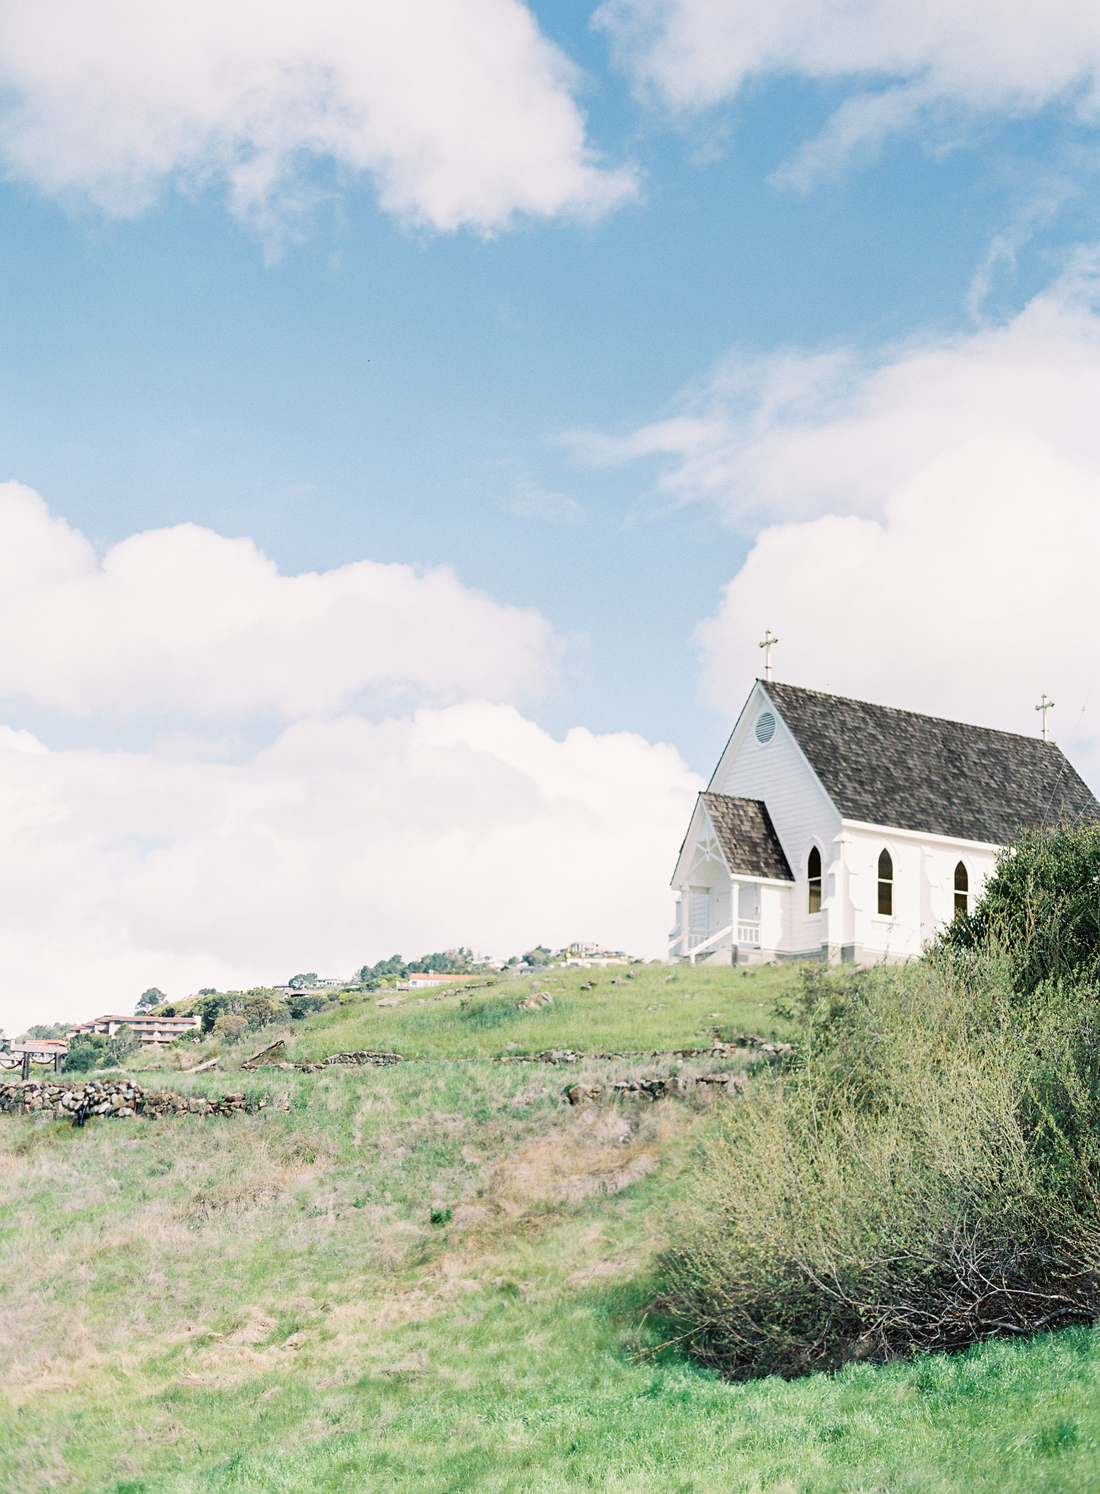 petite white church on top a grassy hill